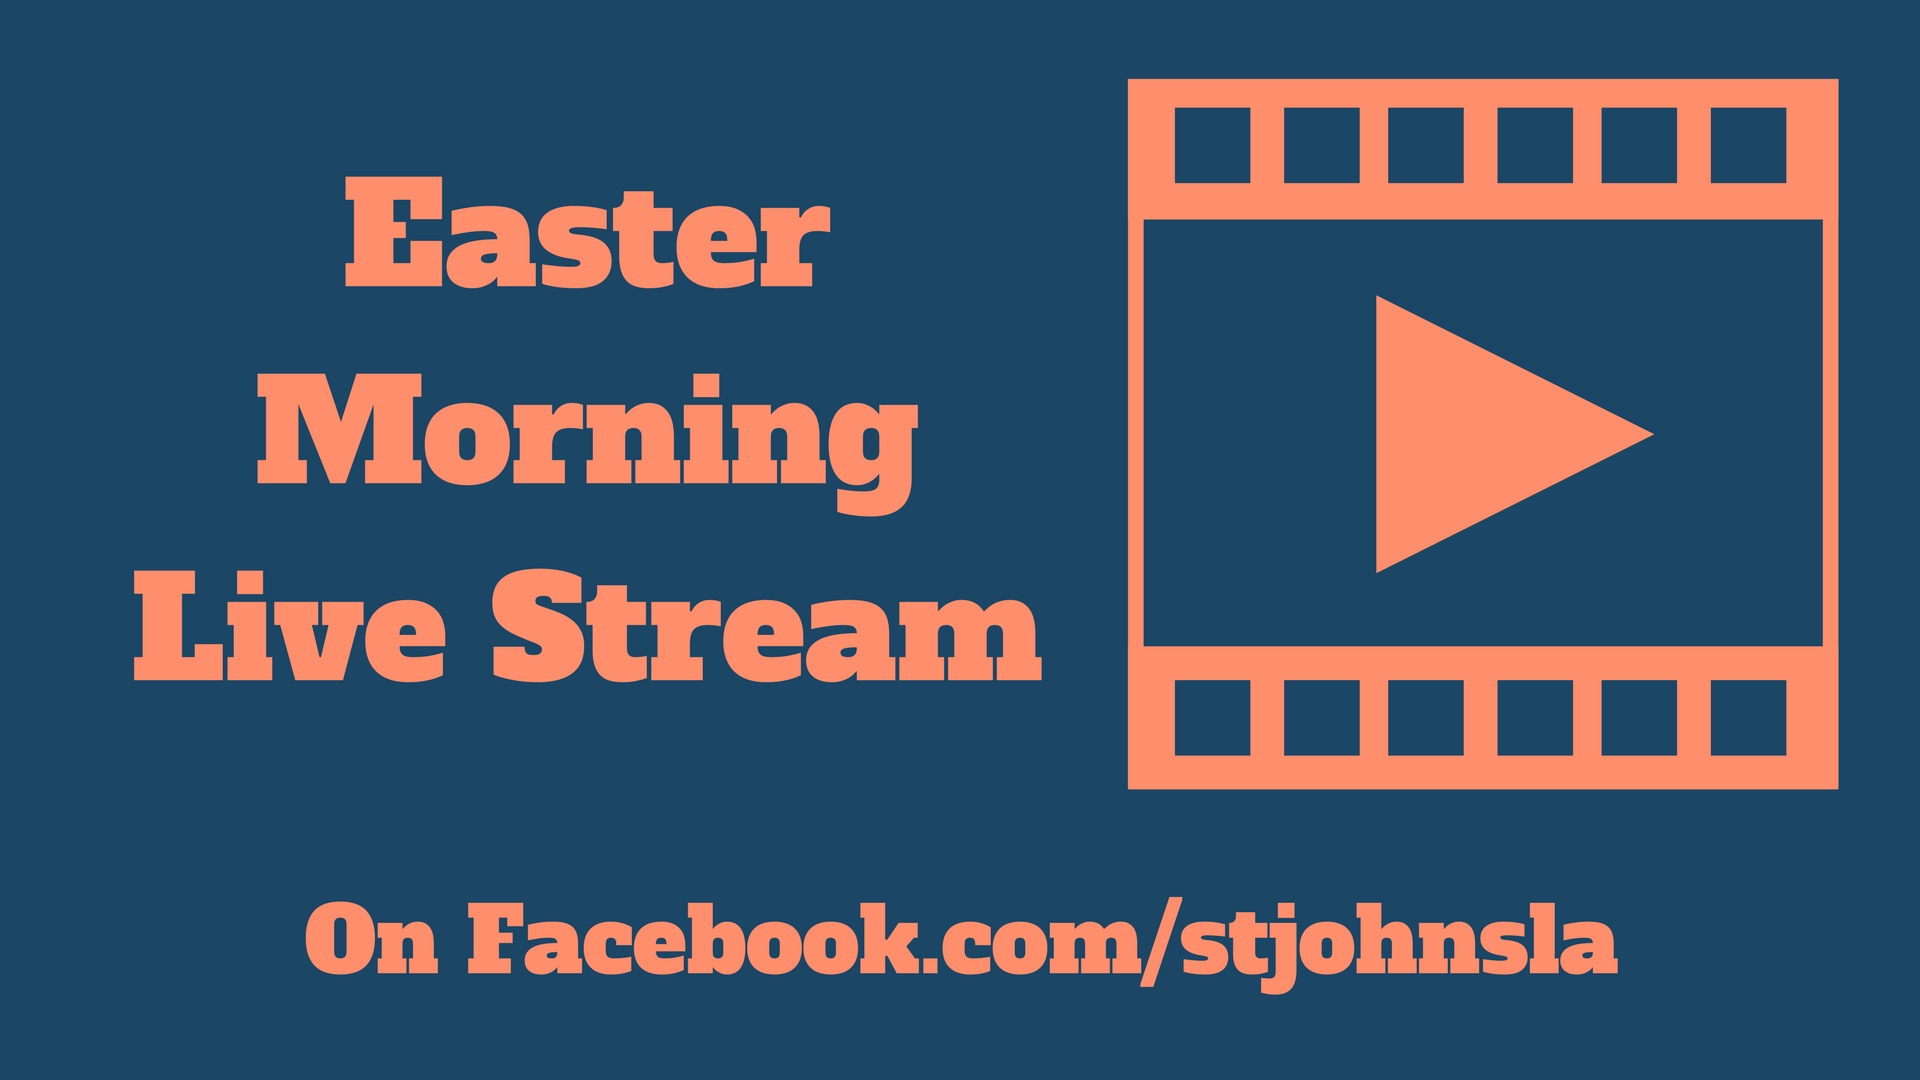 Easter Morning Live Stream for tv